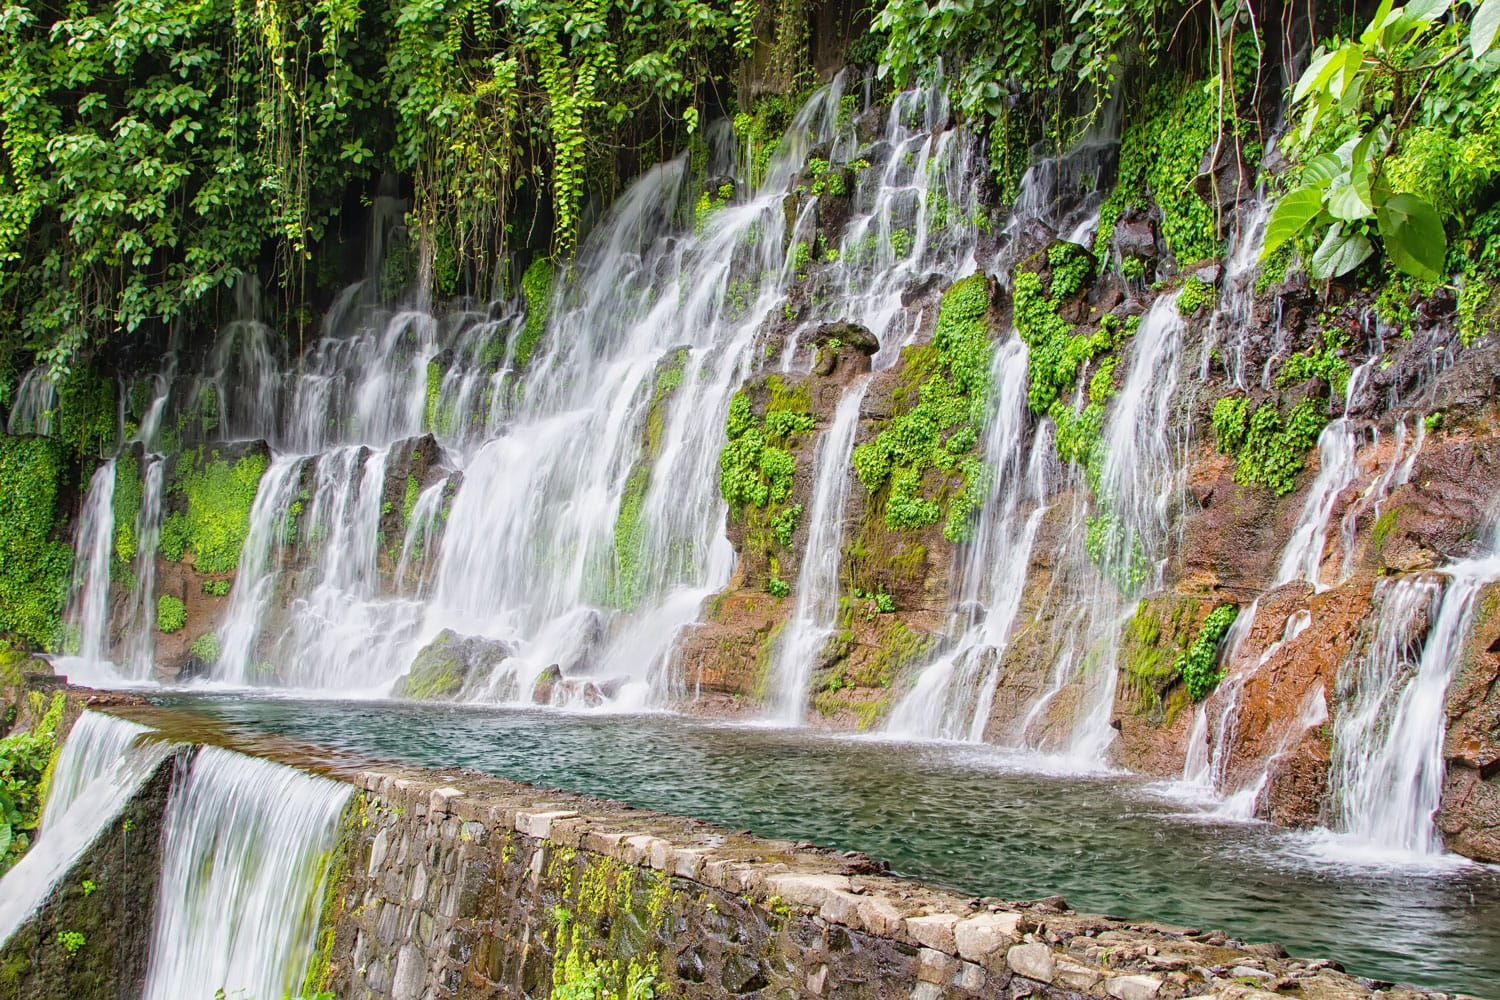 Pulhapanzak waterfall, Honduras, Central America